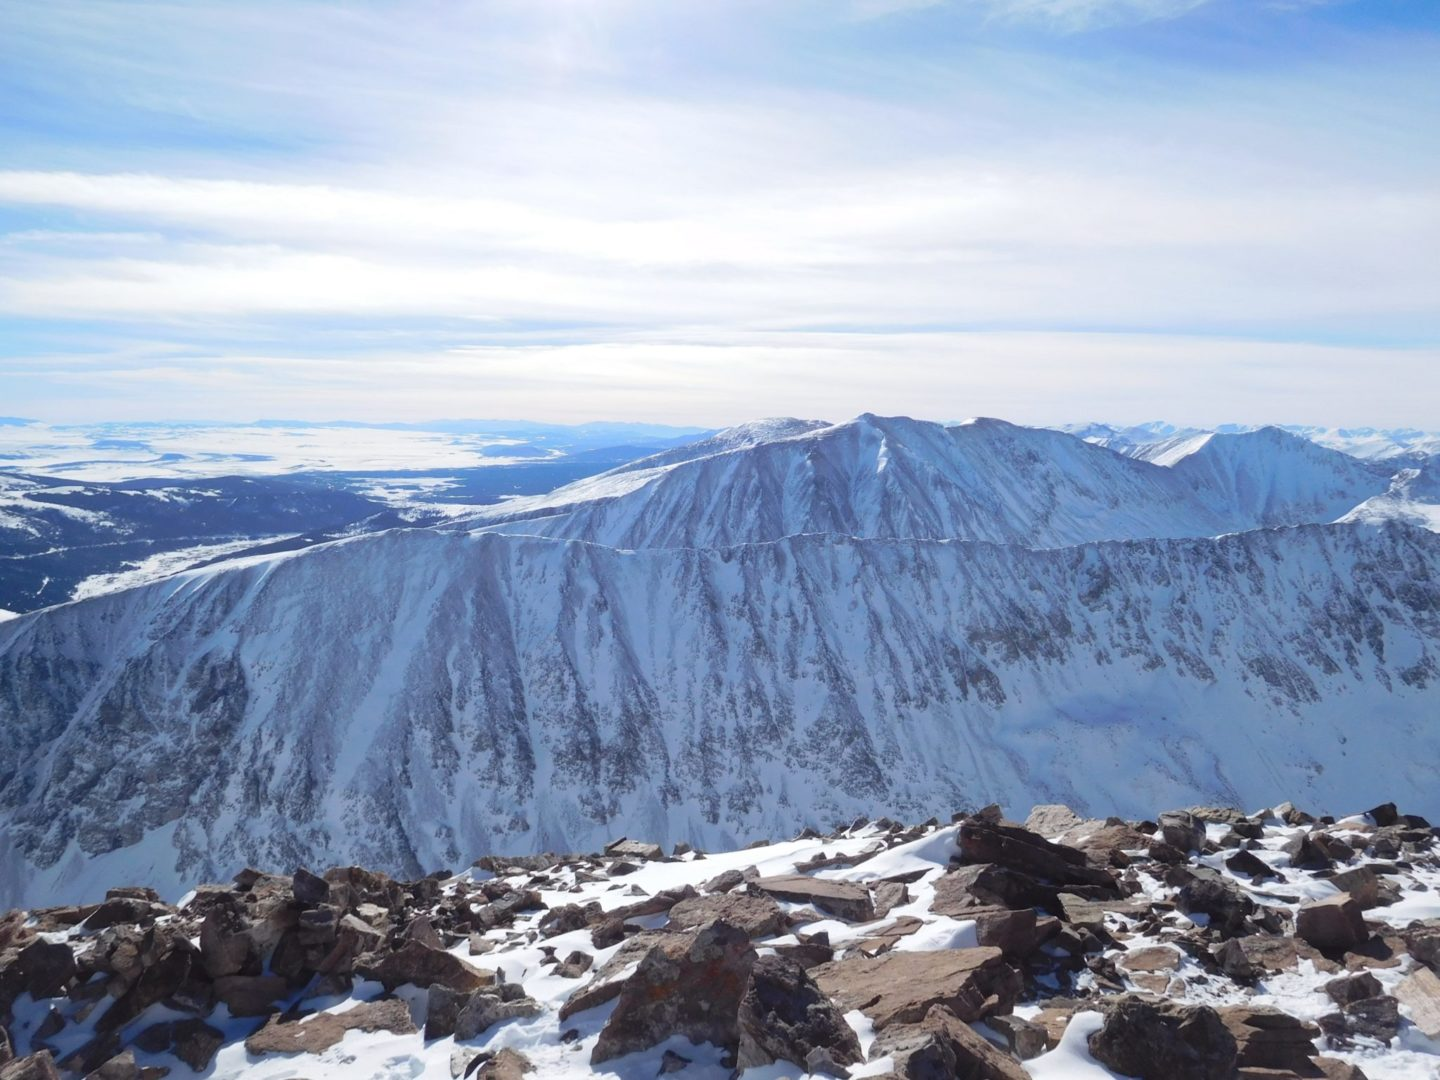 Summit view of Northstar Mountain